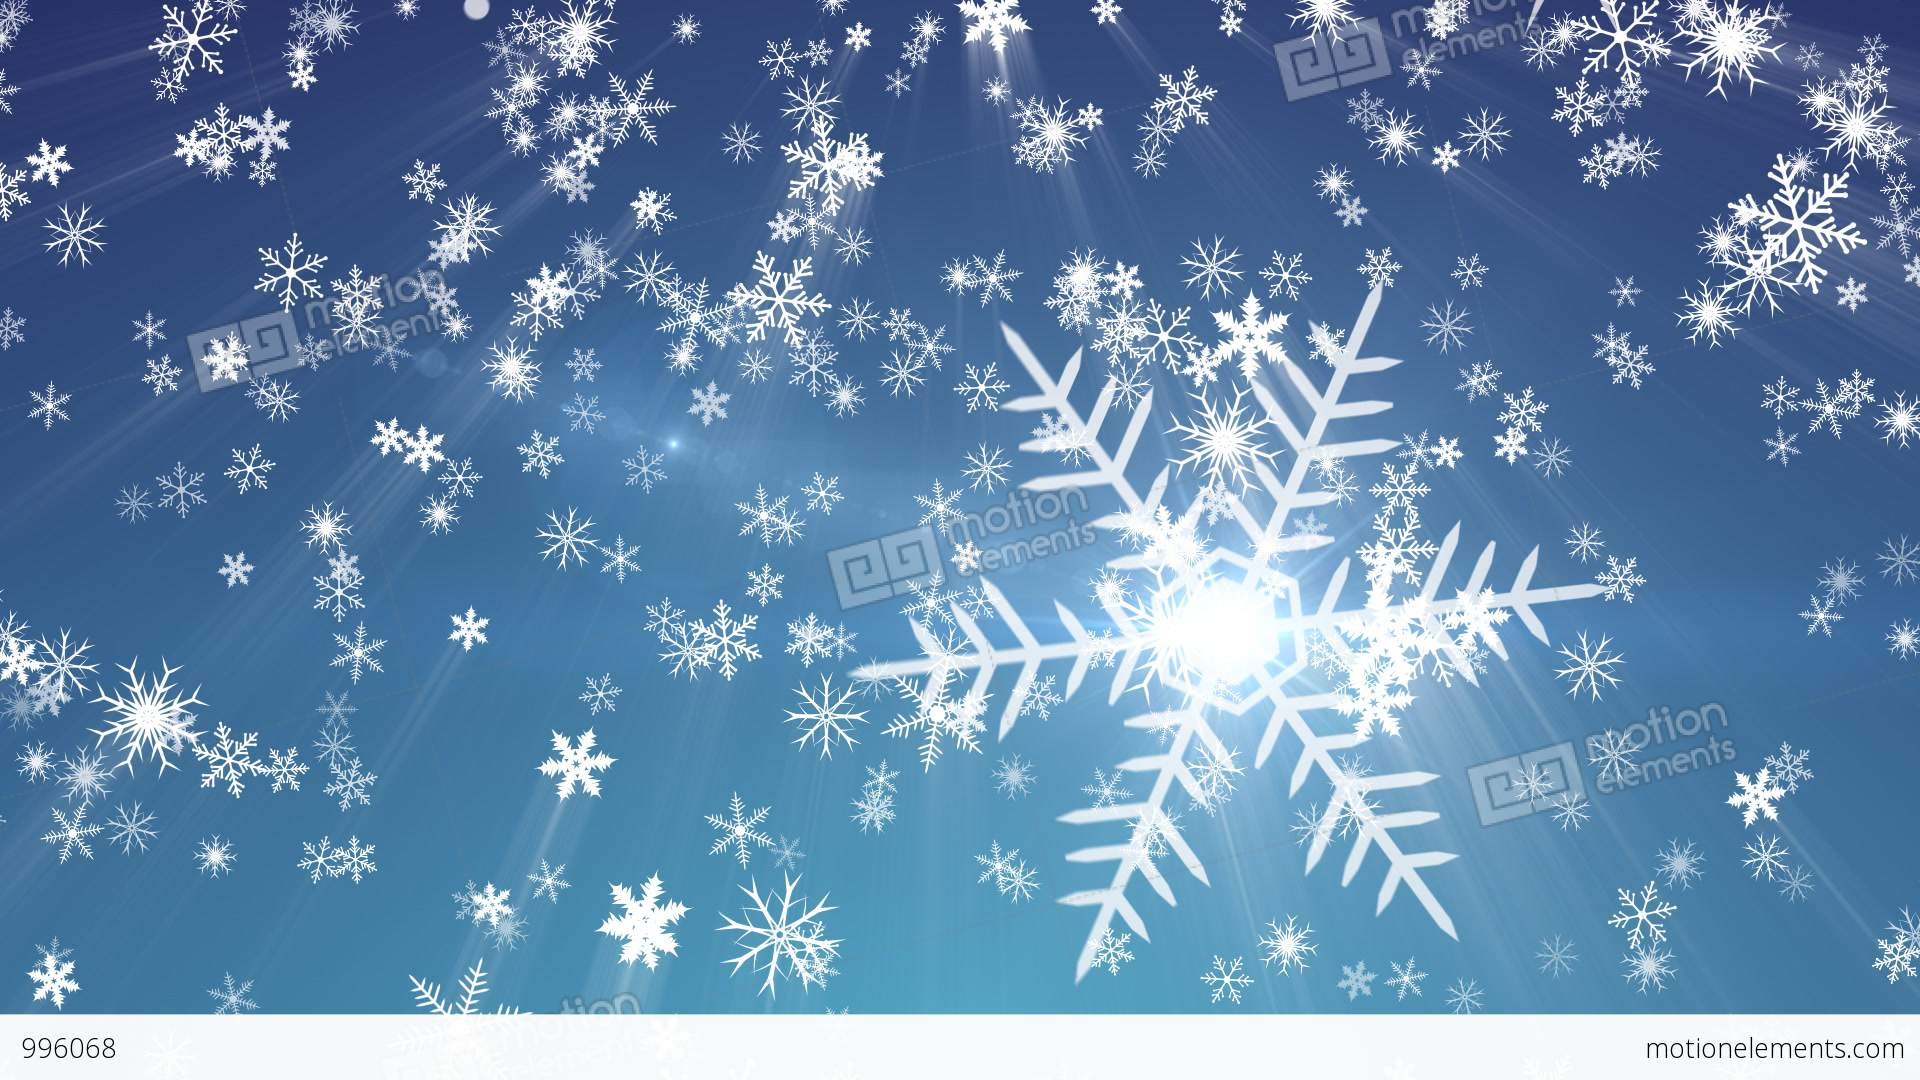 Snowy 1 - Snow / Christmas Video Background Loop Stock ...